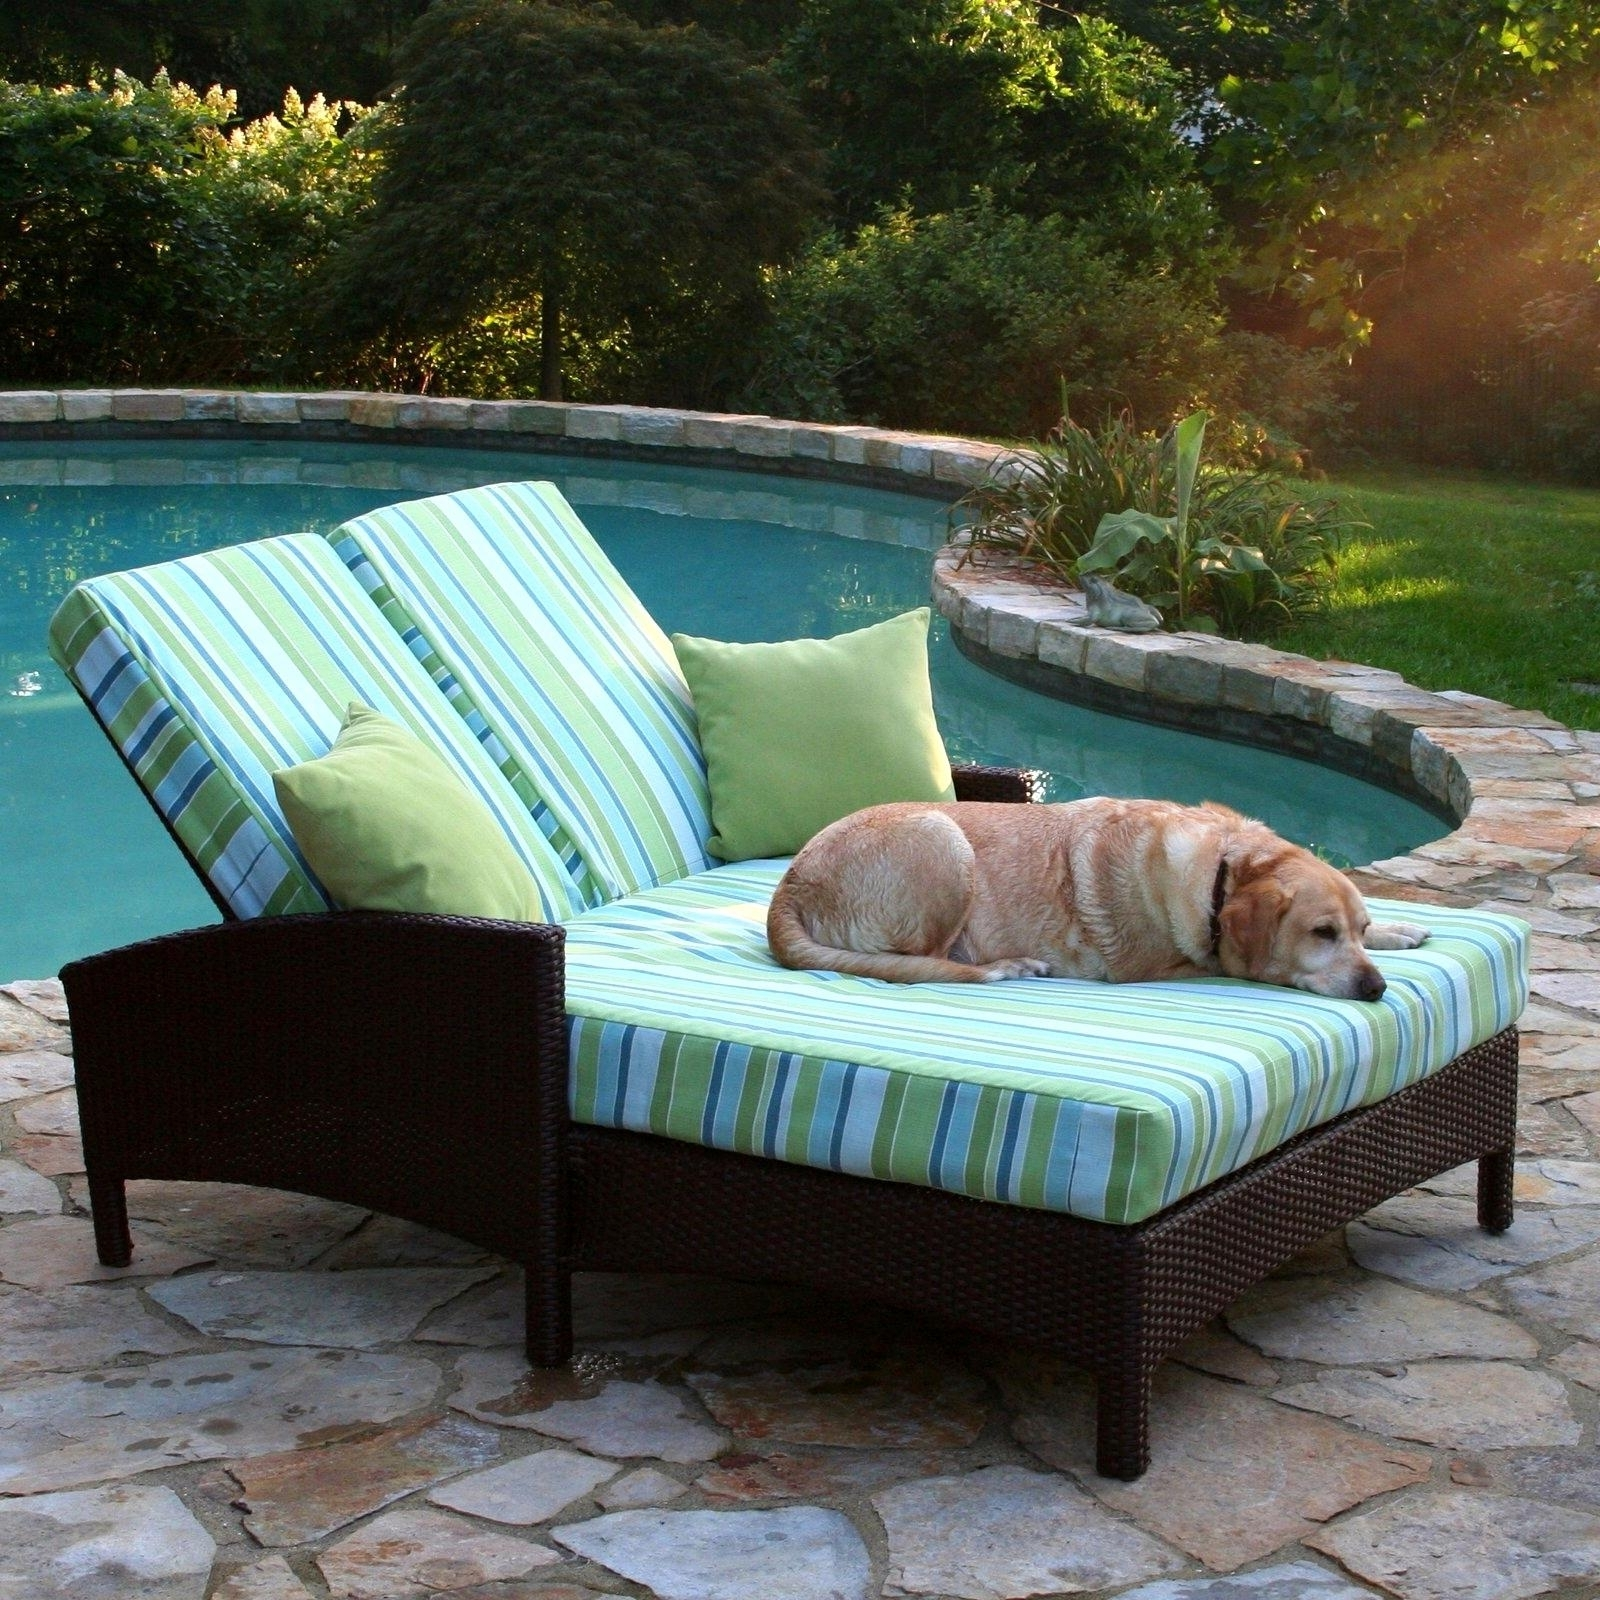 Favorite Startling Pool Outdoor Furniture Chaise Lounge Ideas Ture Ideas Regarding Comfy Chaise Lounges (View 10 of 15)